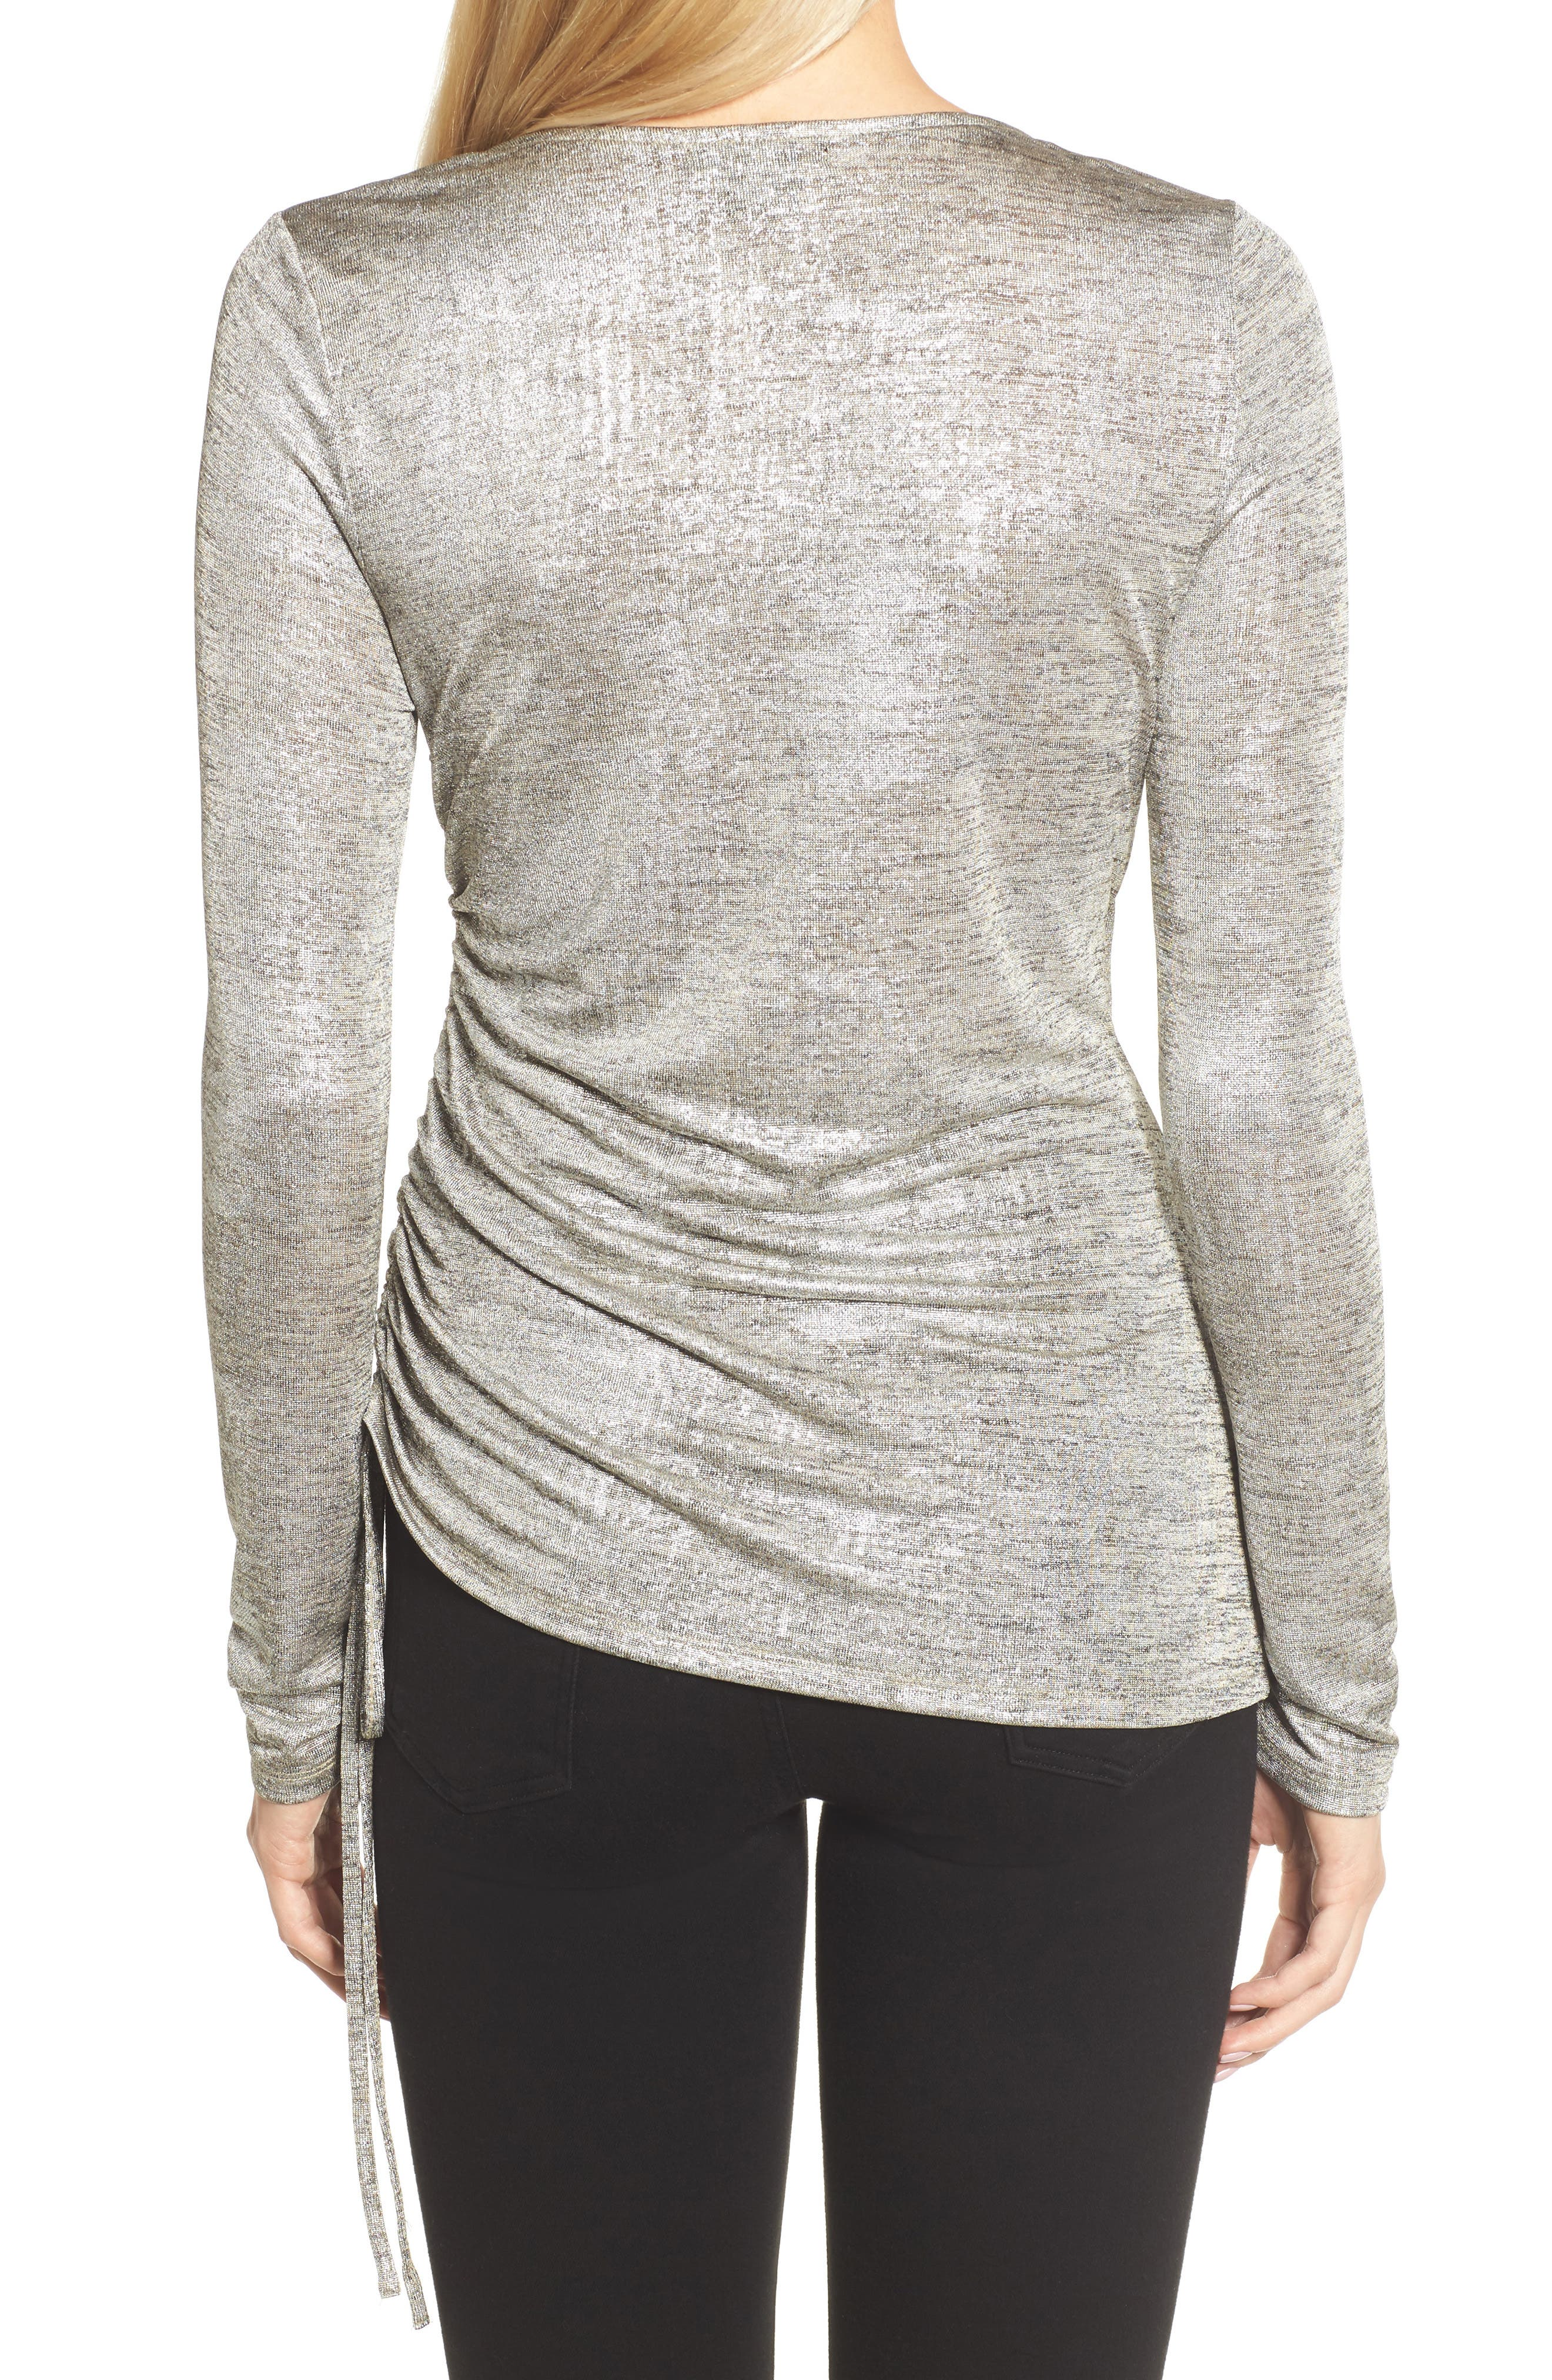 Ruched Metallic Top,                             Alternate thumbnail 2, color,                             040